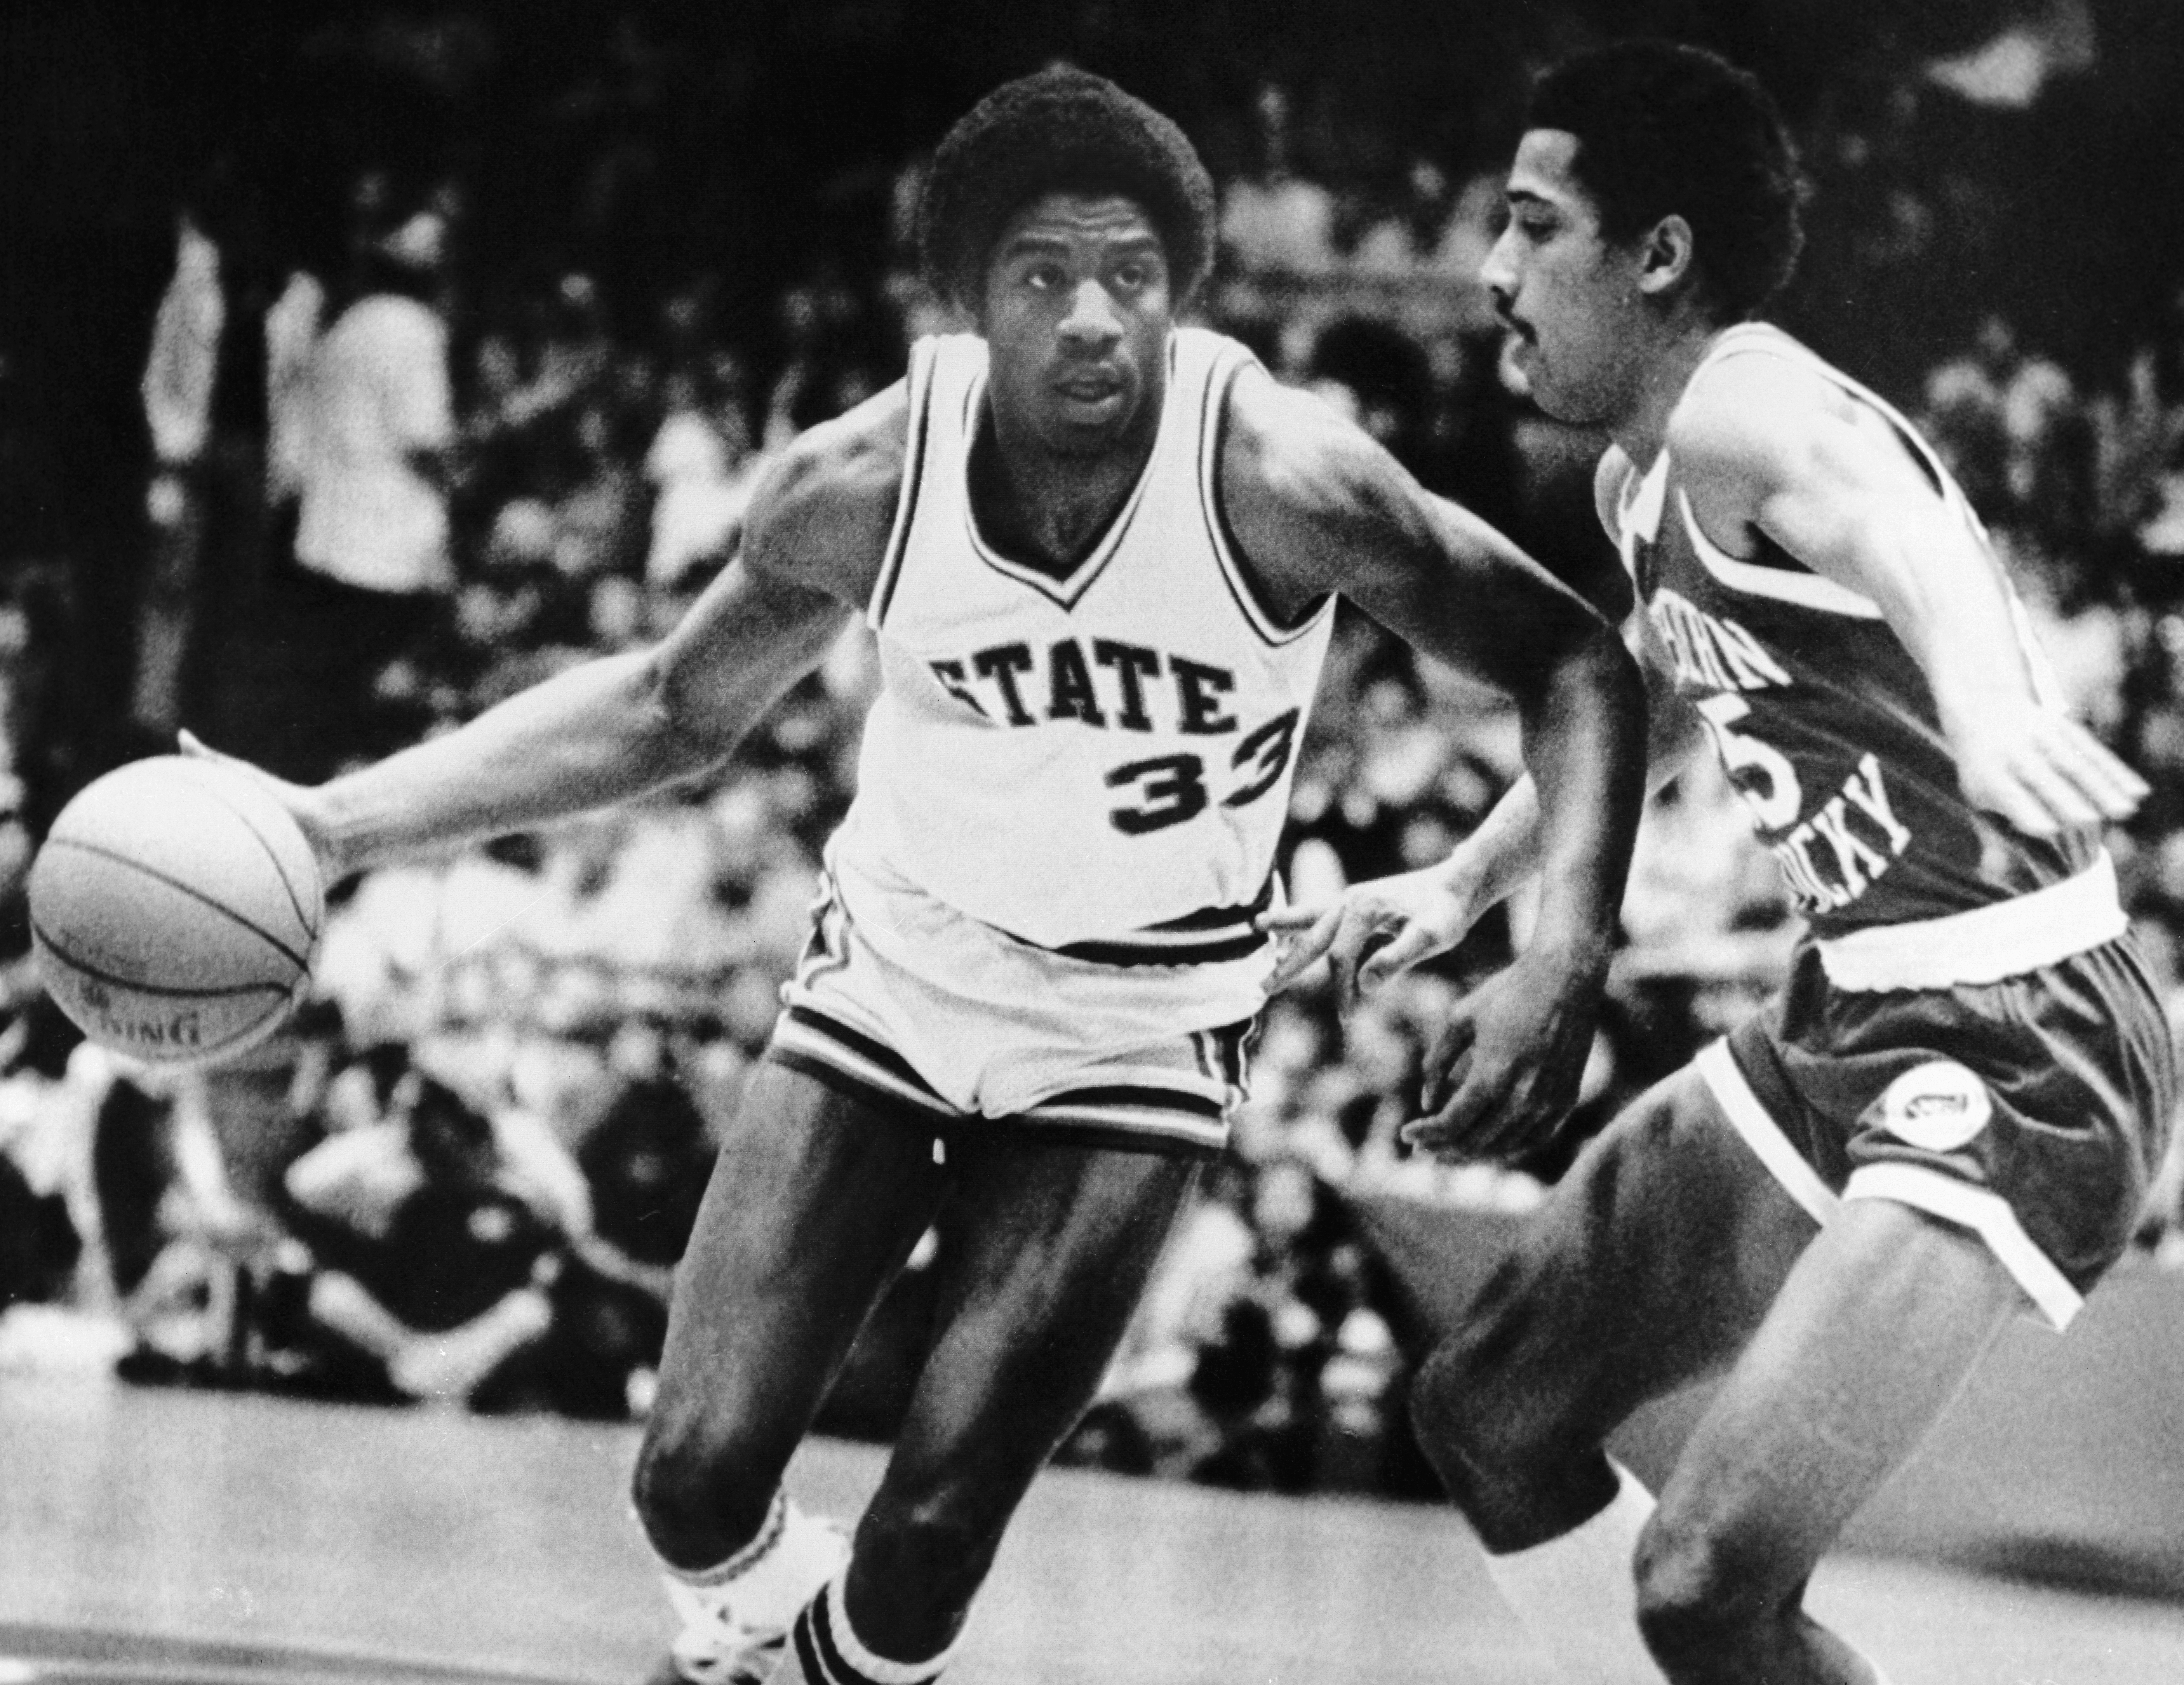 Top 30 Men's College Basketball Players Ever - The Delite